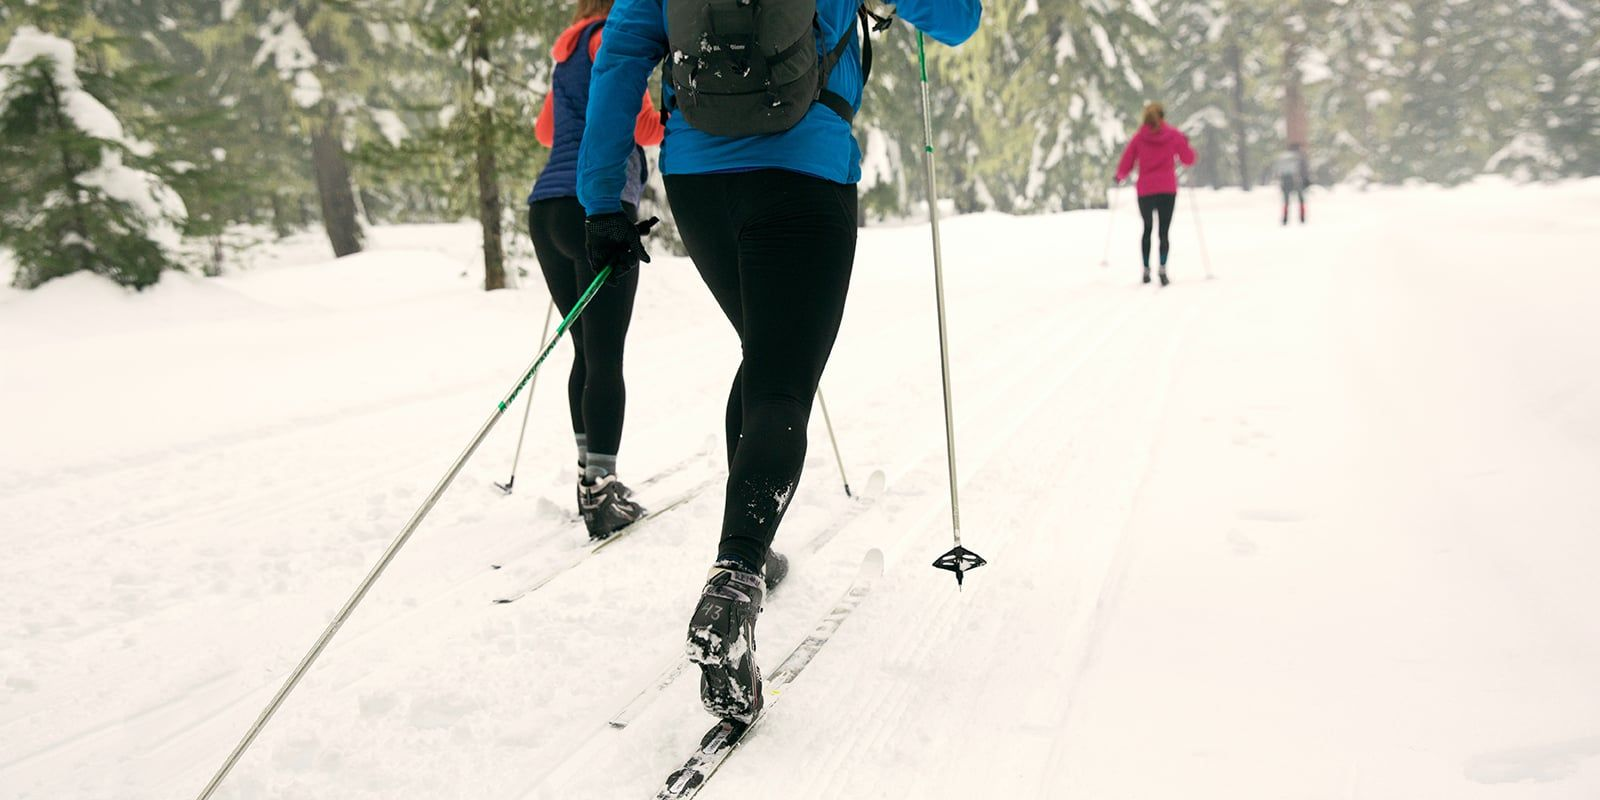 Cross Country Skiing Equipment Guide Cross Country Skiing Cross Country Skiing Quotes Cross Country Skiing Workout